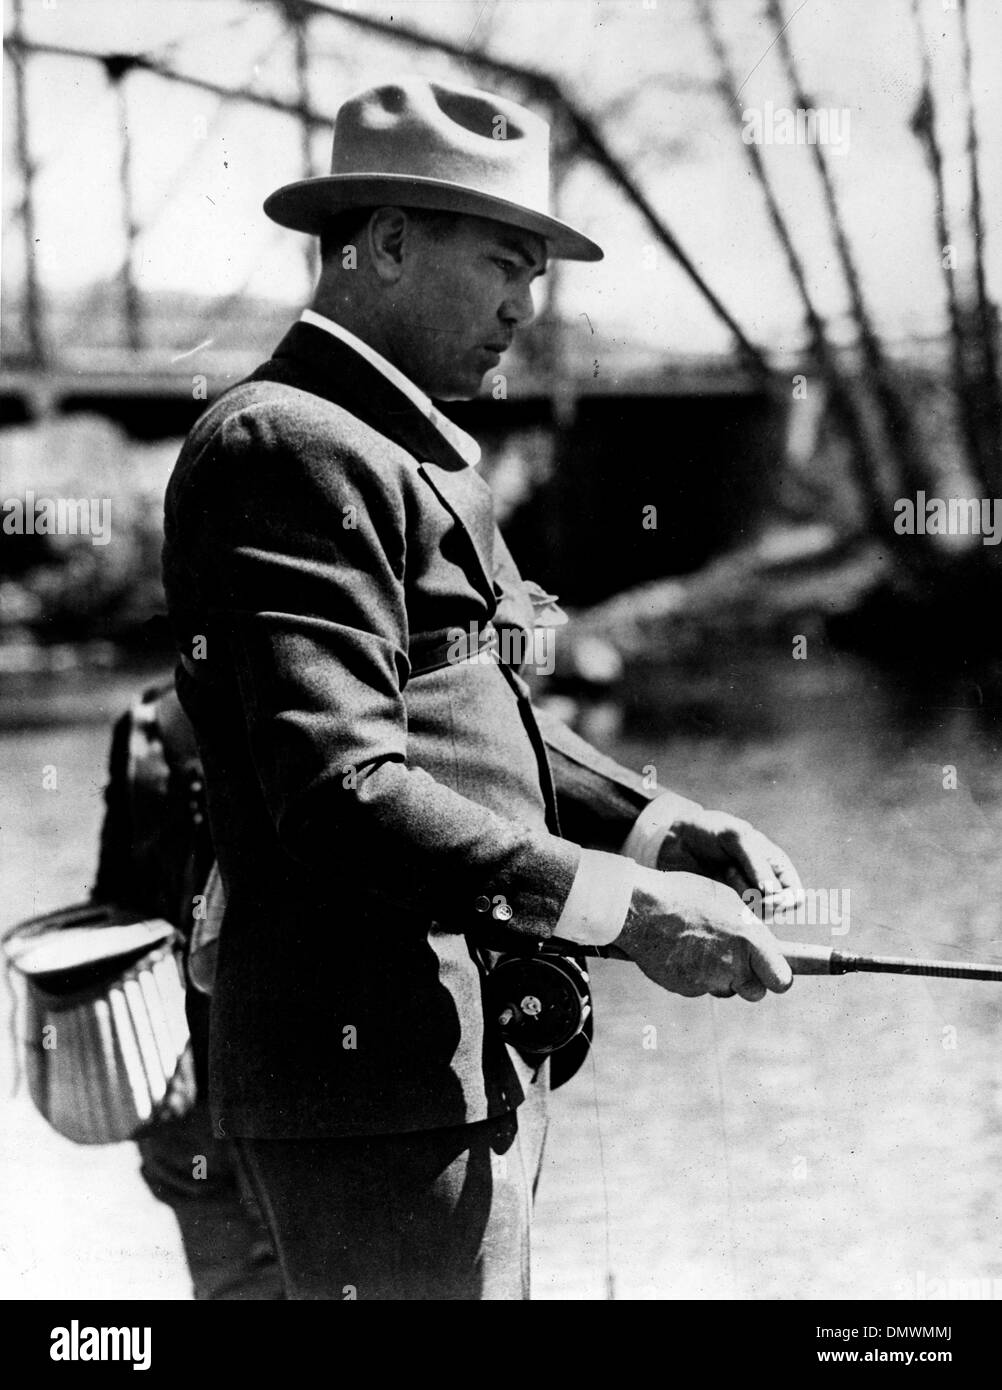 Aug. 5, 1945 - Manassa, CO, USA - JACK DEMPSEY fishing on the Colorado River. Jack 'Manassa Mauler' Dempsey (June 24, 1895 – May 31, 1983) was an American boxer who held the world heavyweight title from 1919 to 1926. Dempsey's aggressive style and punching power made him one of the most popular boxers in history. Many of his fights set financial and attendance records.  (Credit Ima - Stock Image